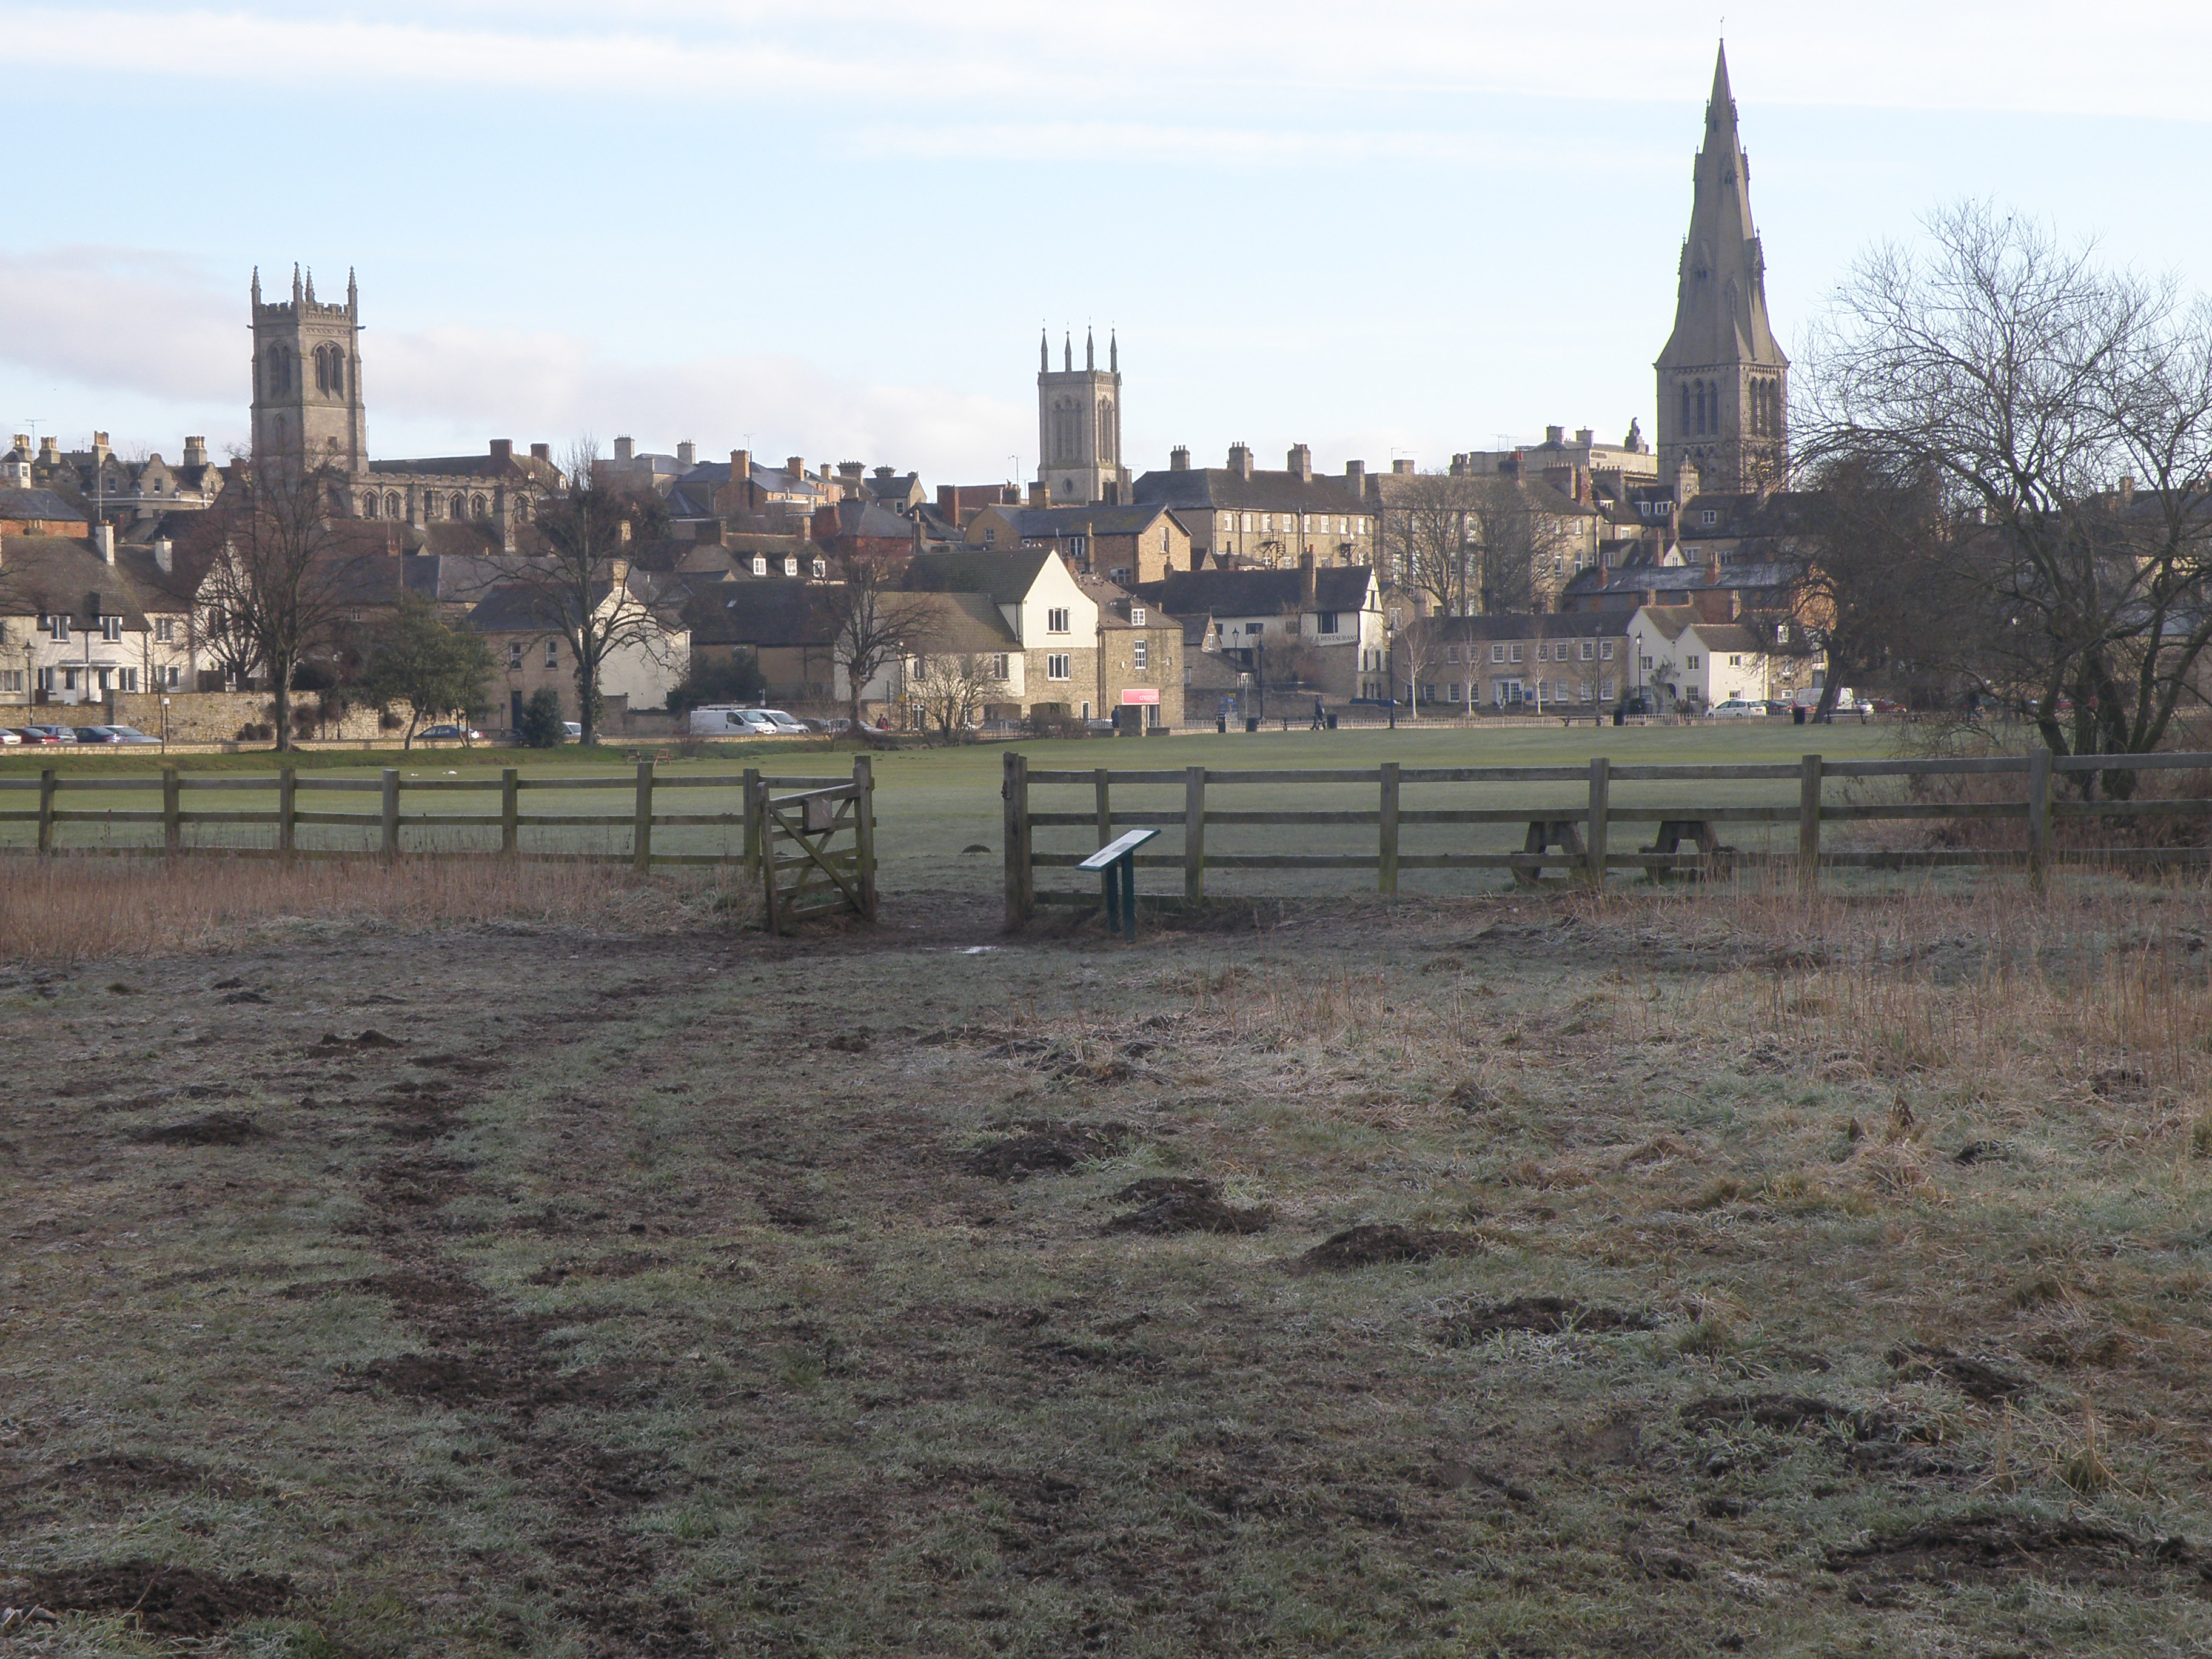 File:Stamford town scape - geograph.org.uk - 1737389.jpgbalance of stamford town